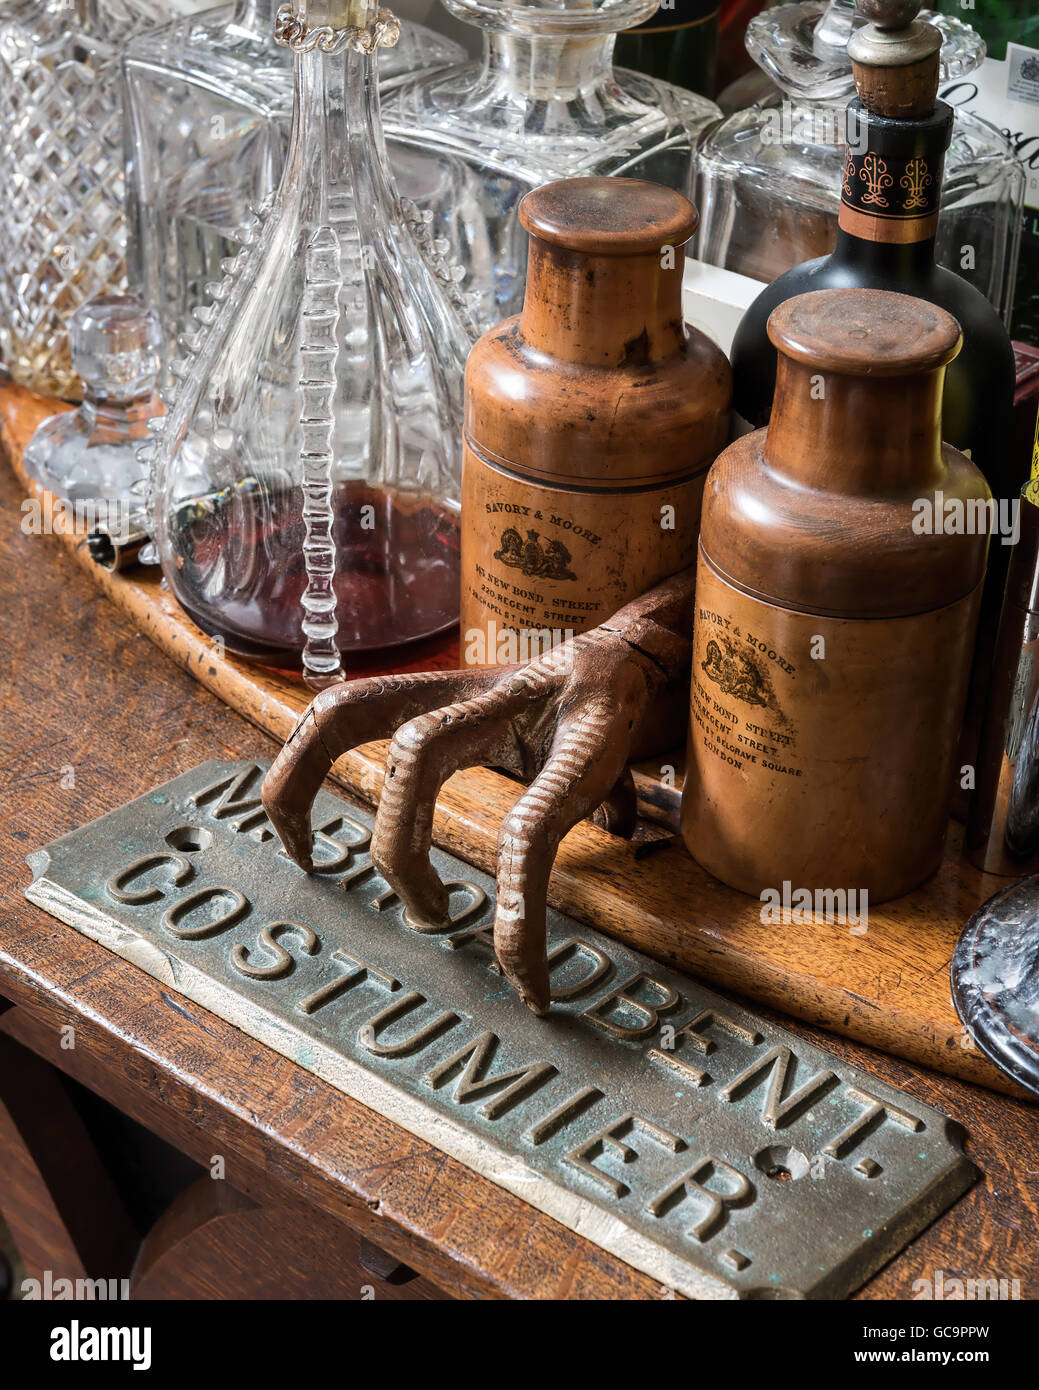 Antique homeware with metal sign in London apartment, UK - Stock Image